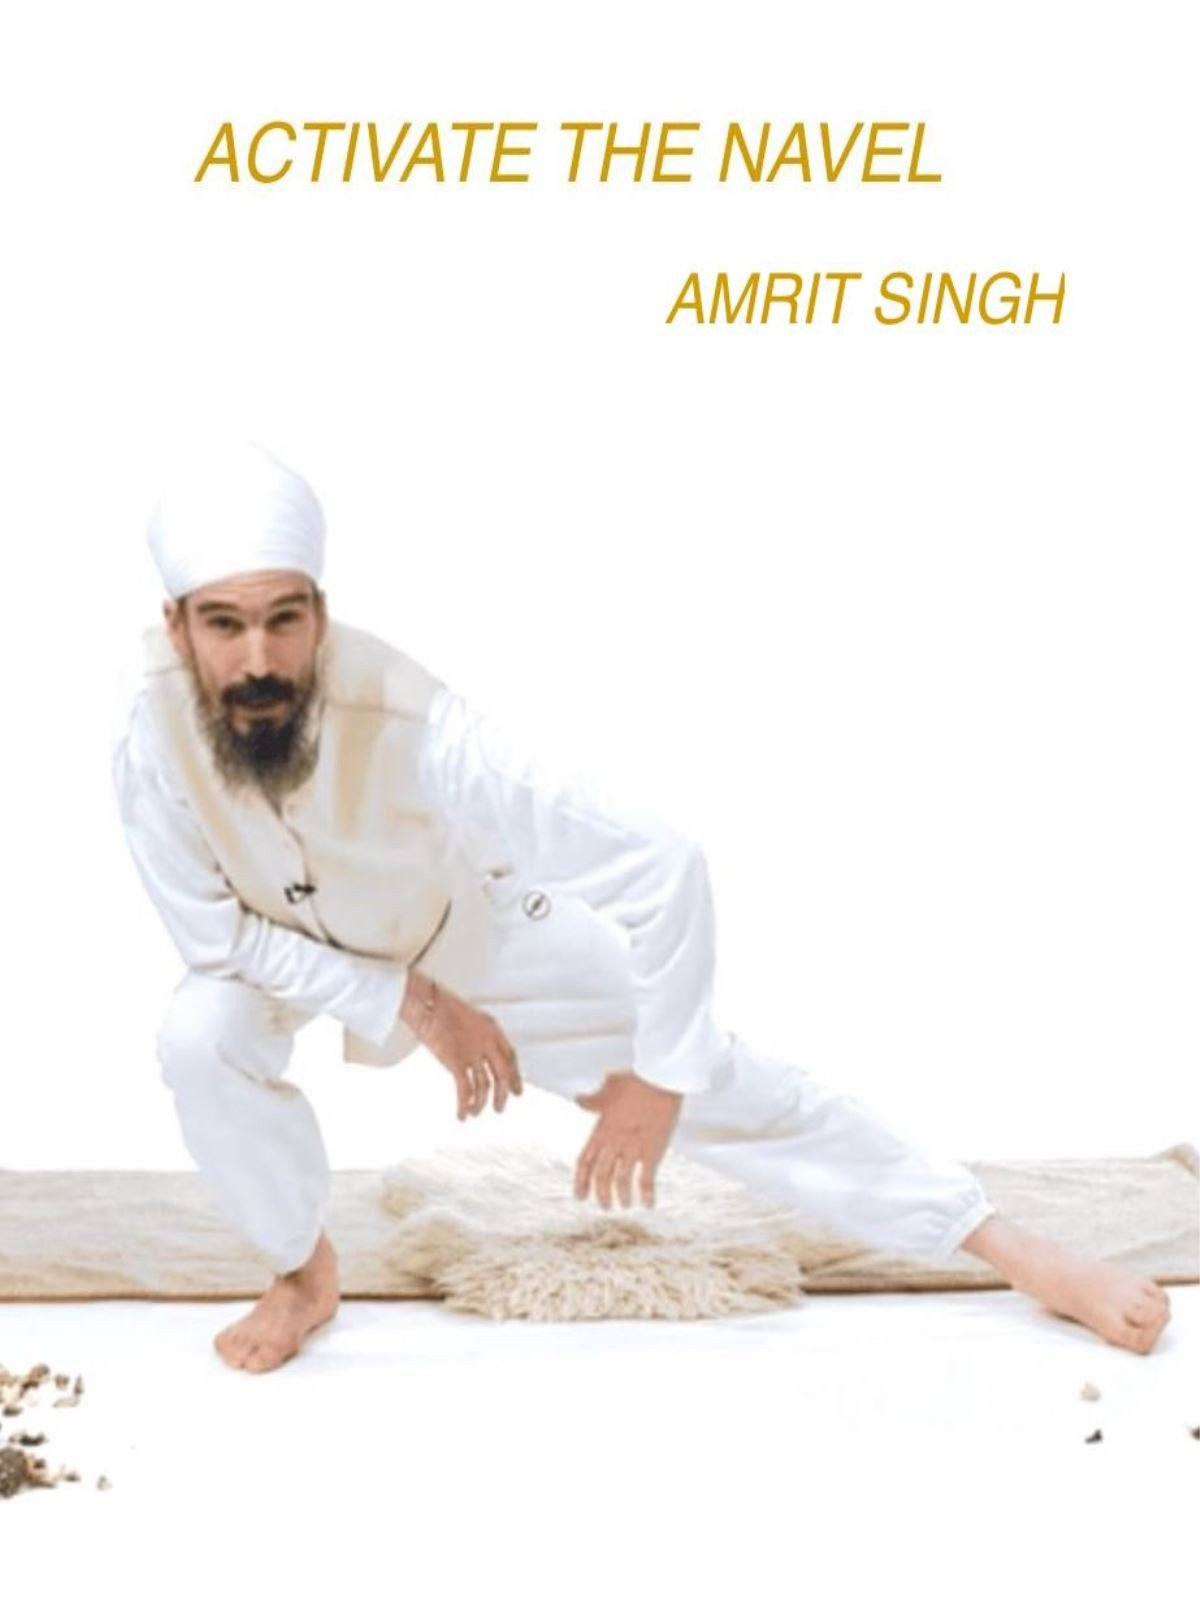 Activating the navel with Amrit Singh